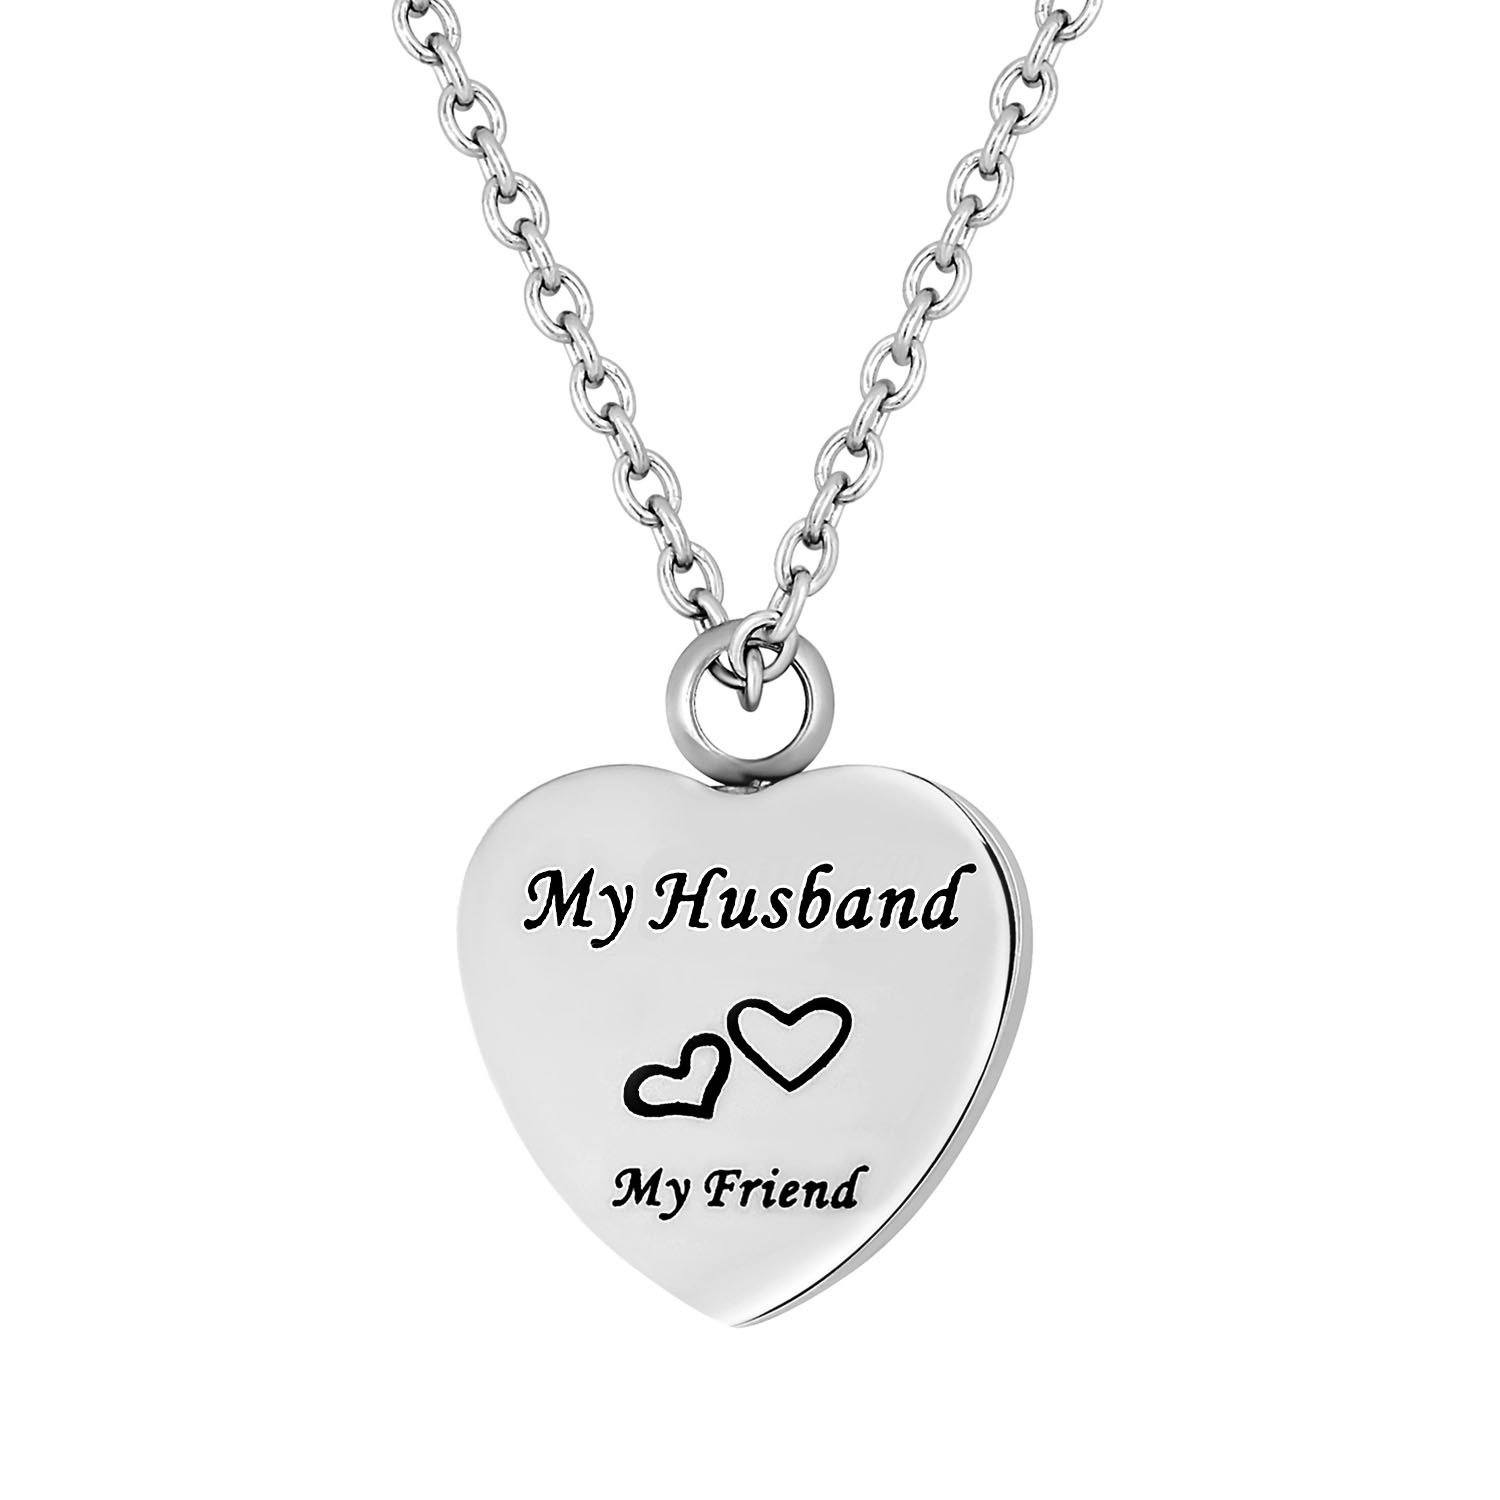 gift missing piece boyfriend valentines couples tag st are necklaceetsy necklace products and puzzle you ever my dog husband wife hand forever d